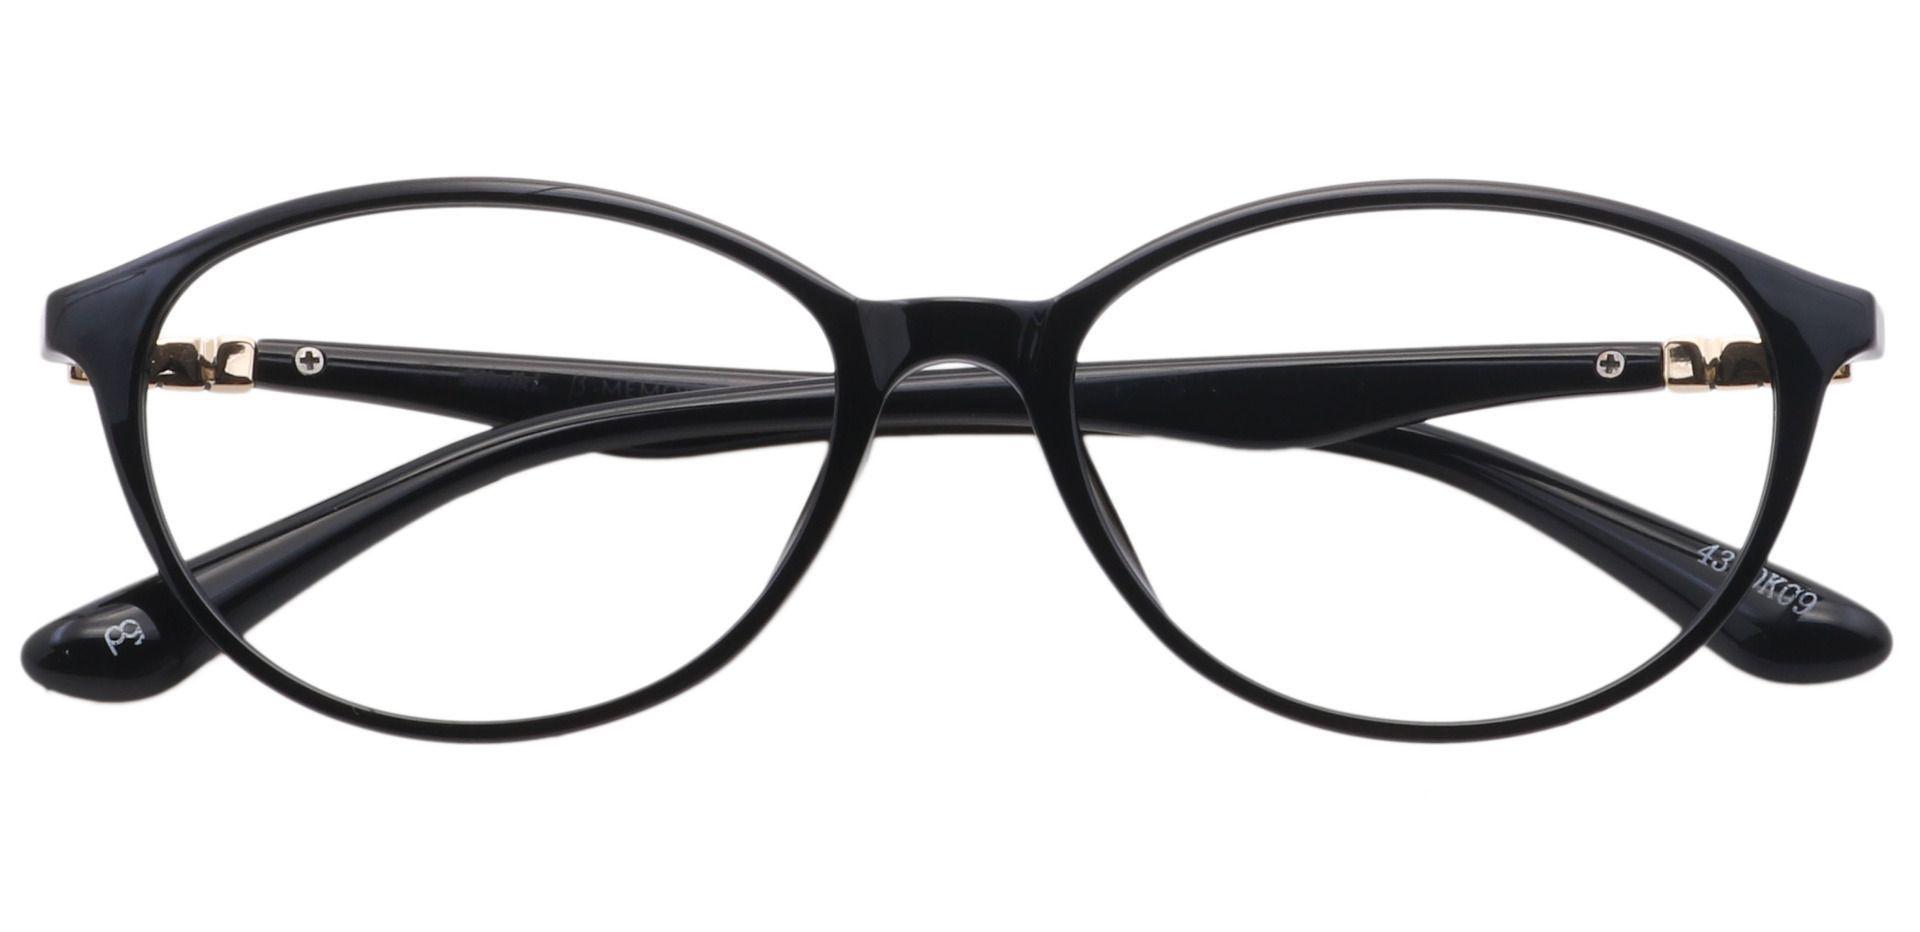 Vann Oval Prescription Glasses - Shiny Black/gold Accents